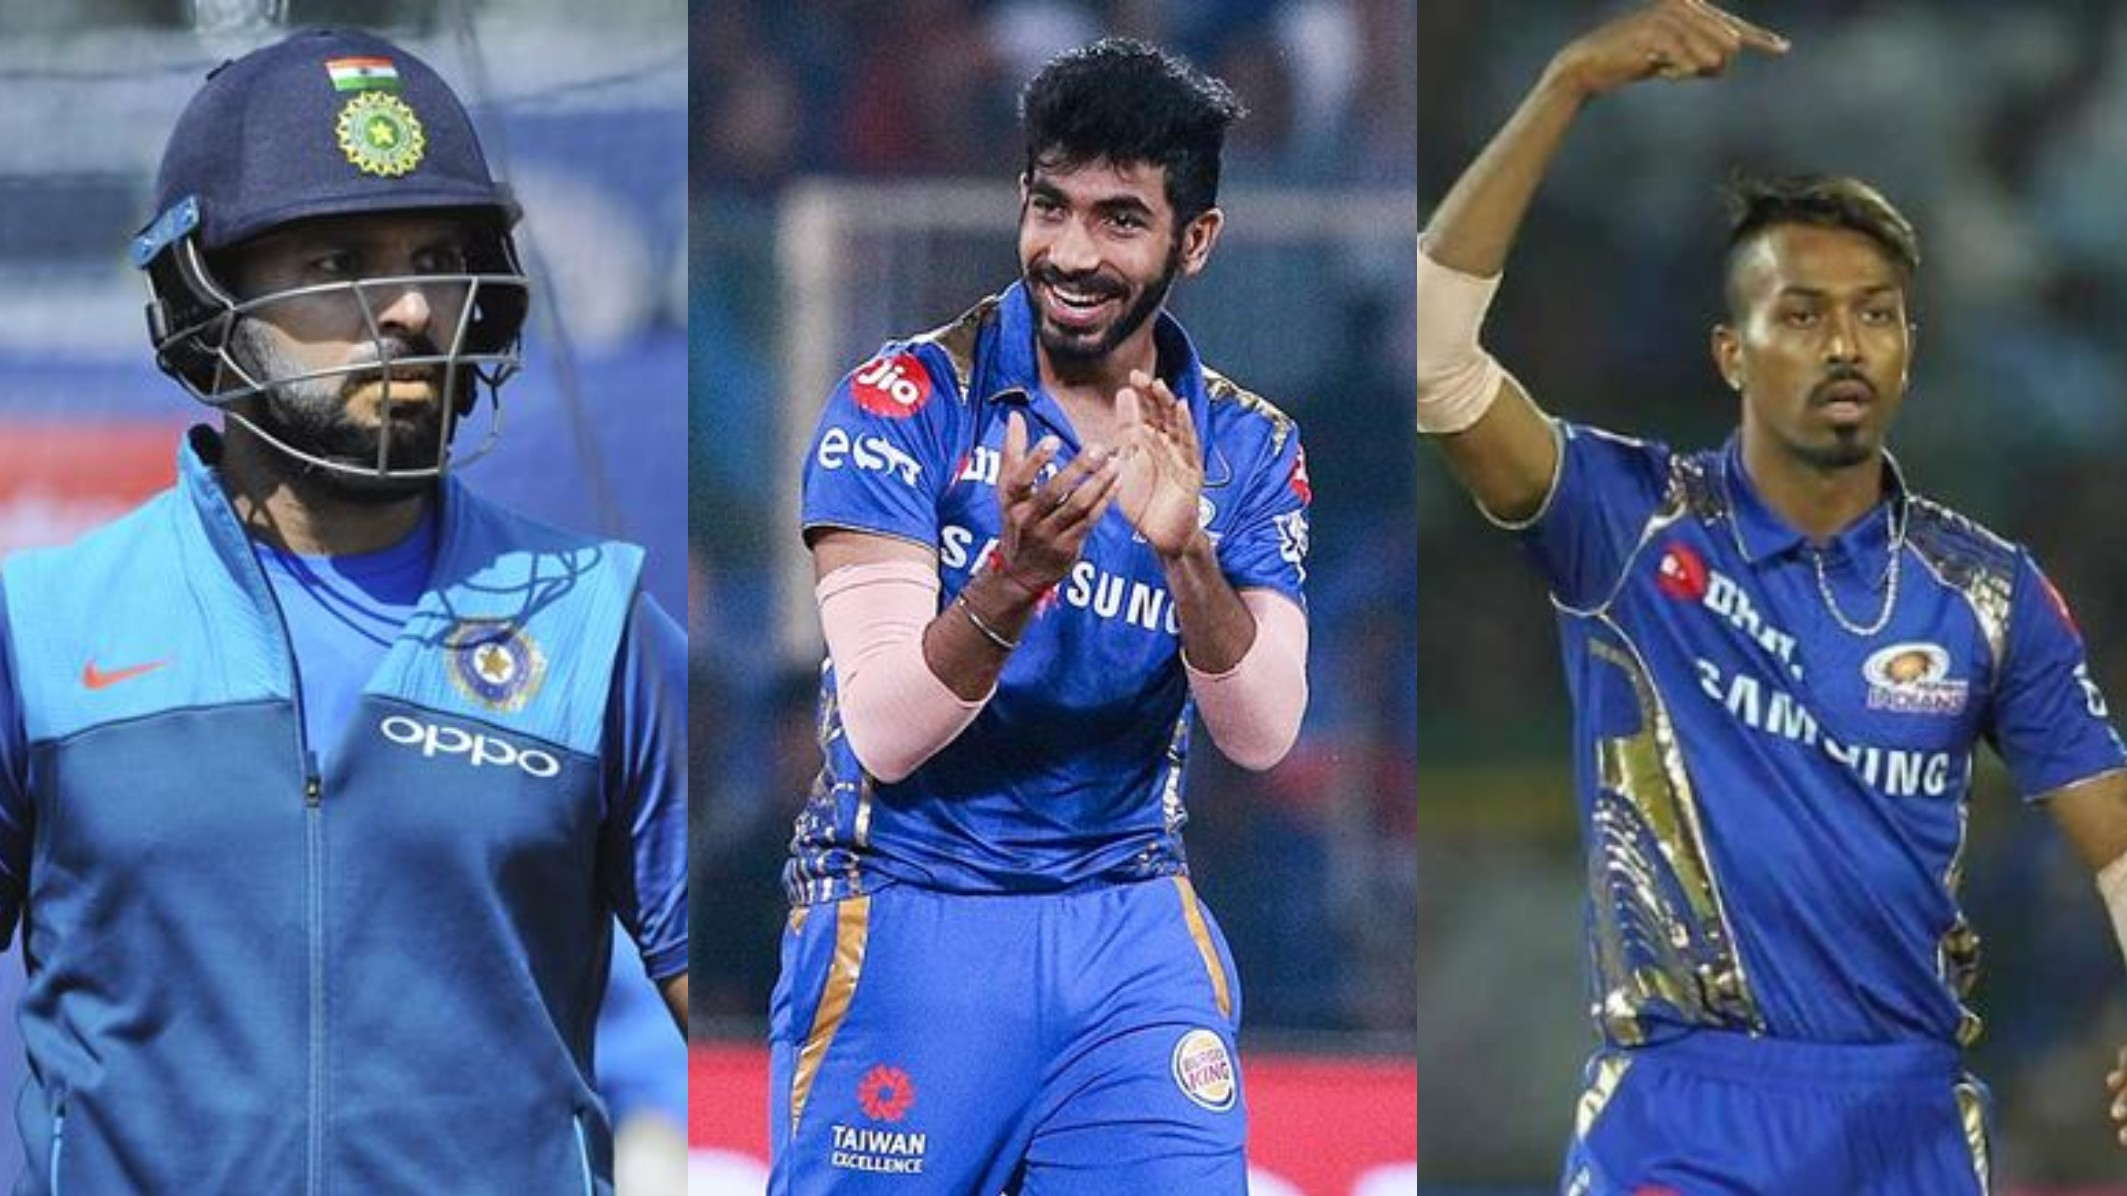 Jasprit Bumrah gets birthday wishes from MI and India teammates as he turns 26